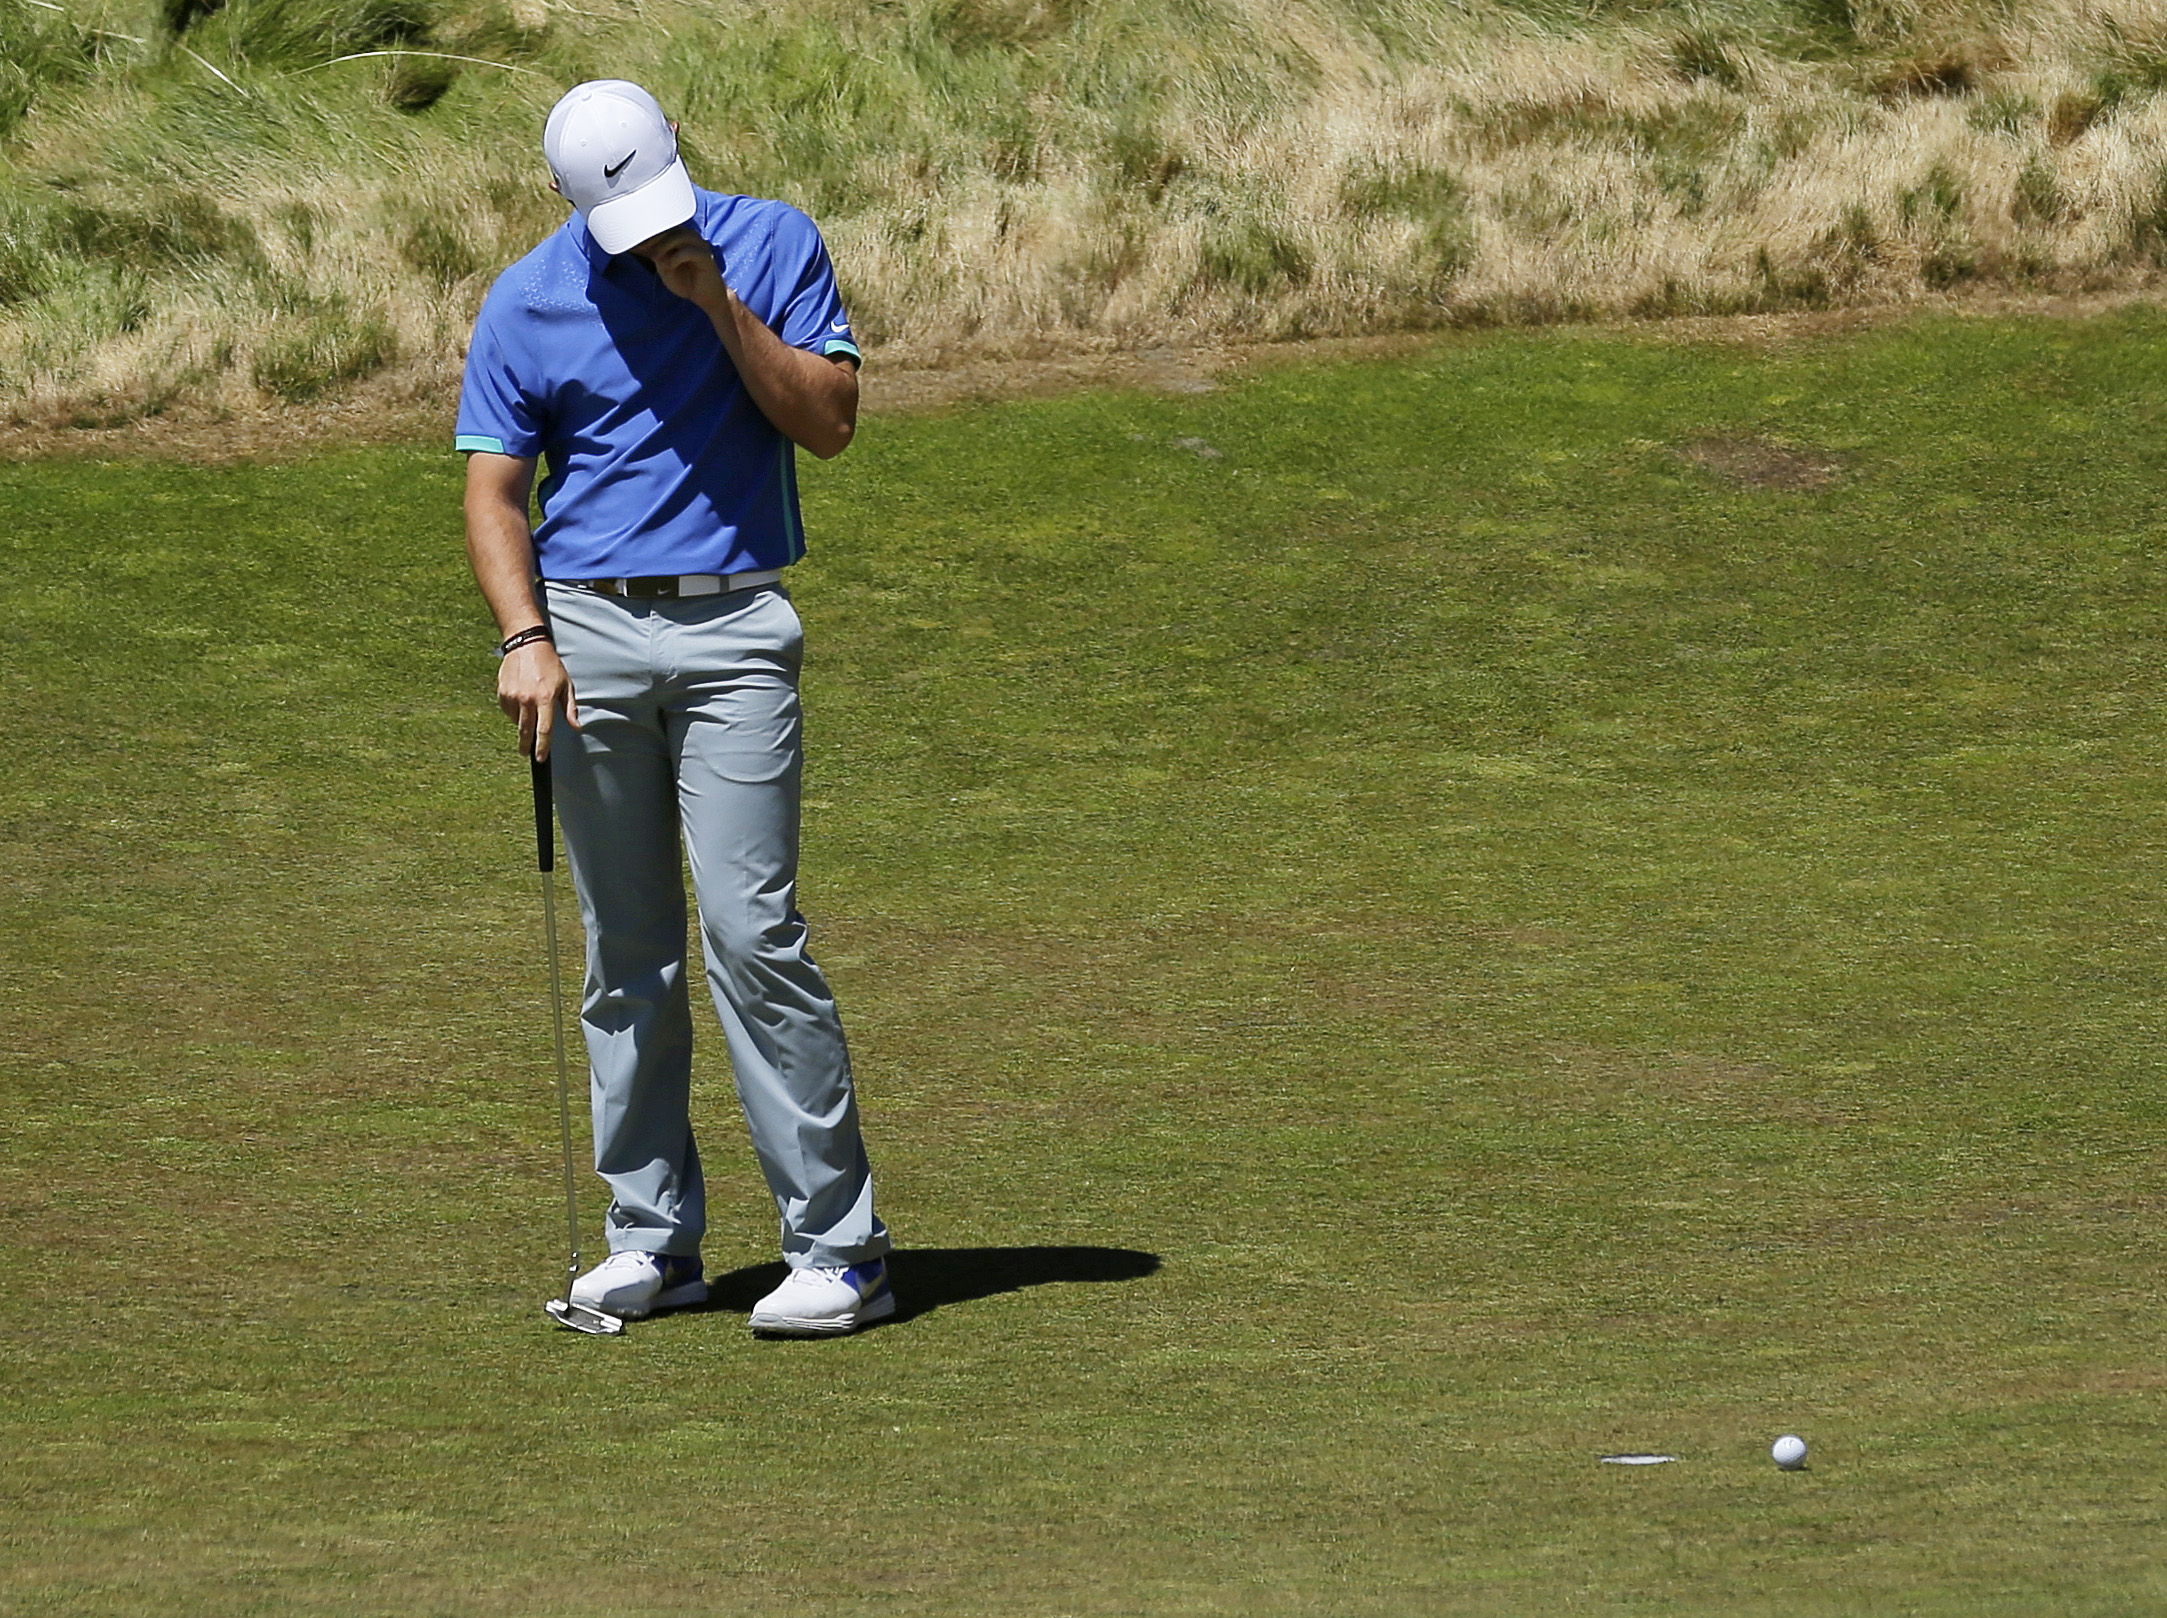 Rory McIlroy, of Northern Ireland, reacts after missing a putt on the 12th hole during the third round of the U.S. Open golf tournament at Chambers Bay on Saturday, June 20, 2015 in University Place, Wash. (AP Photo/Ted S. Warren)